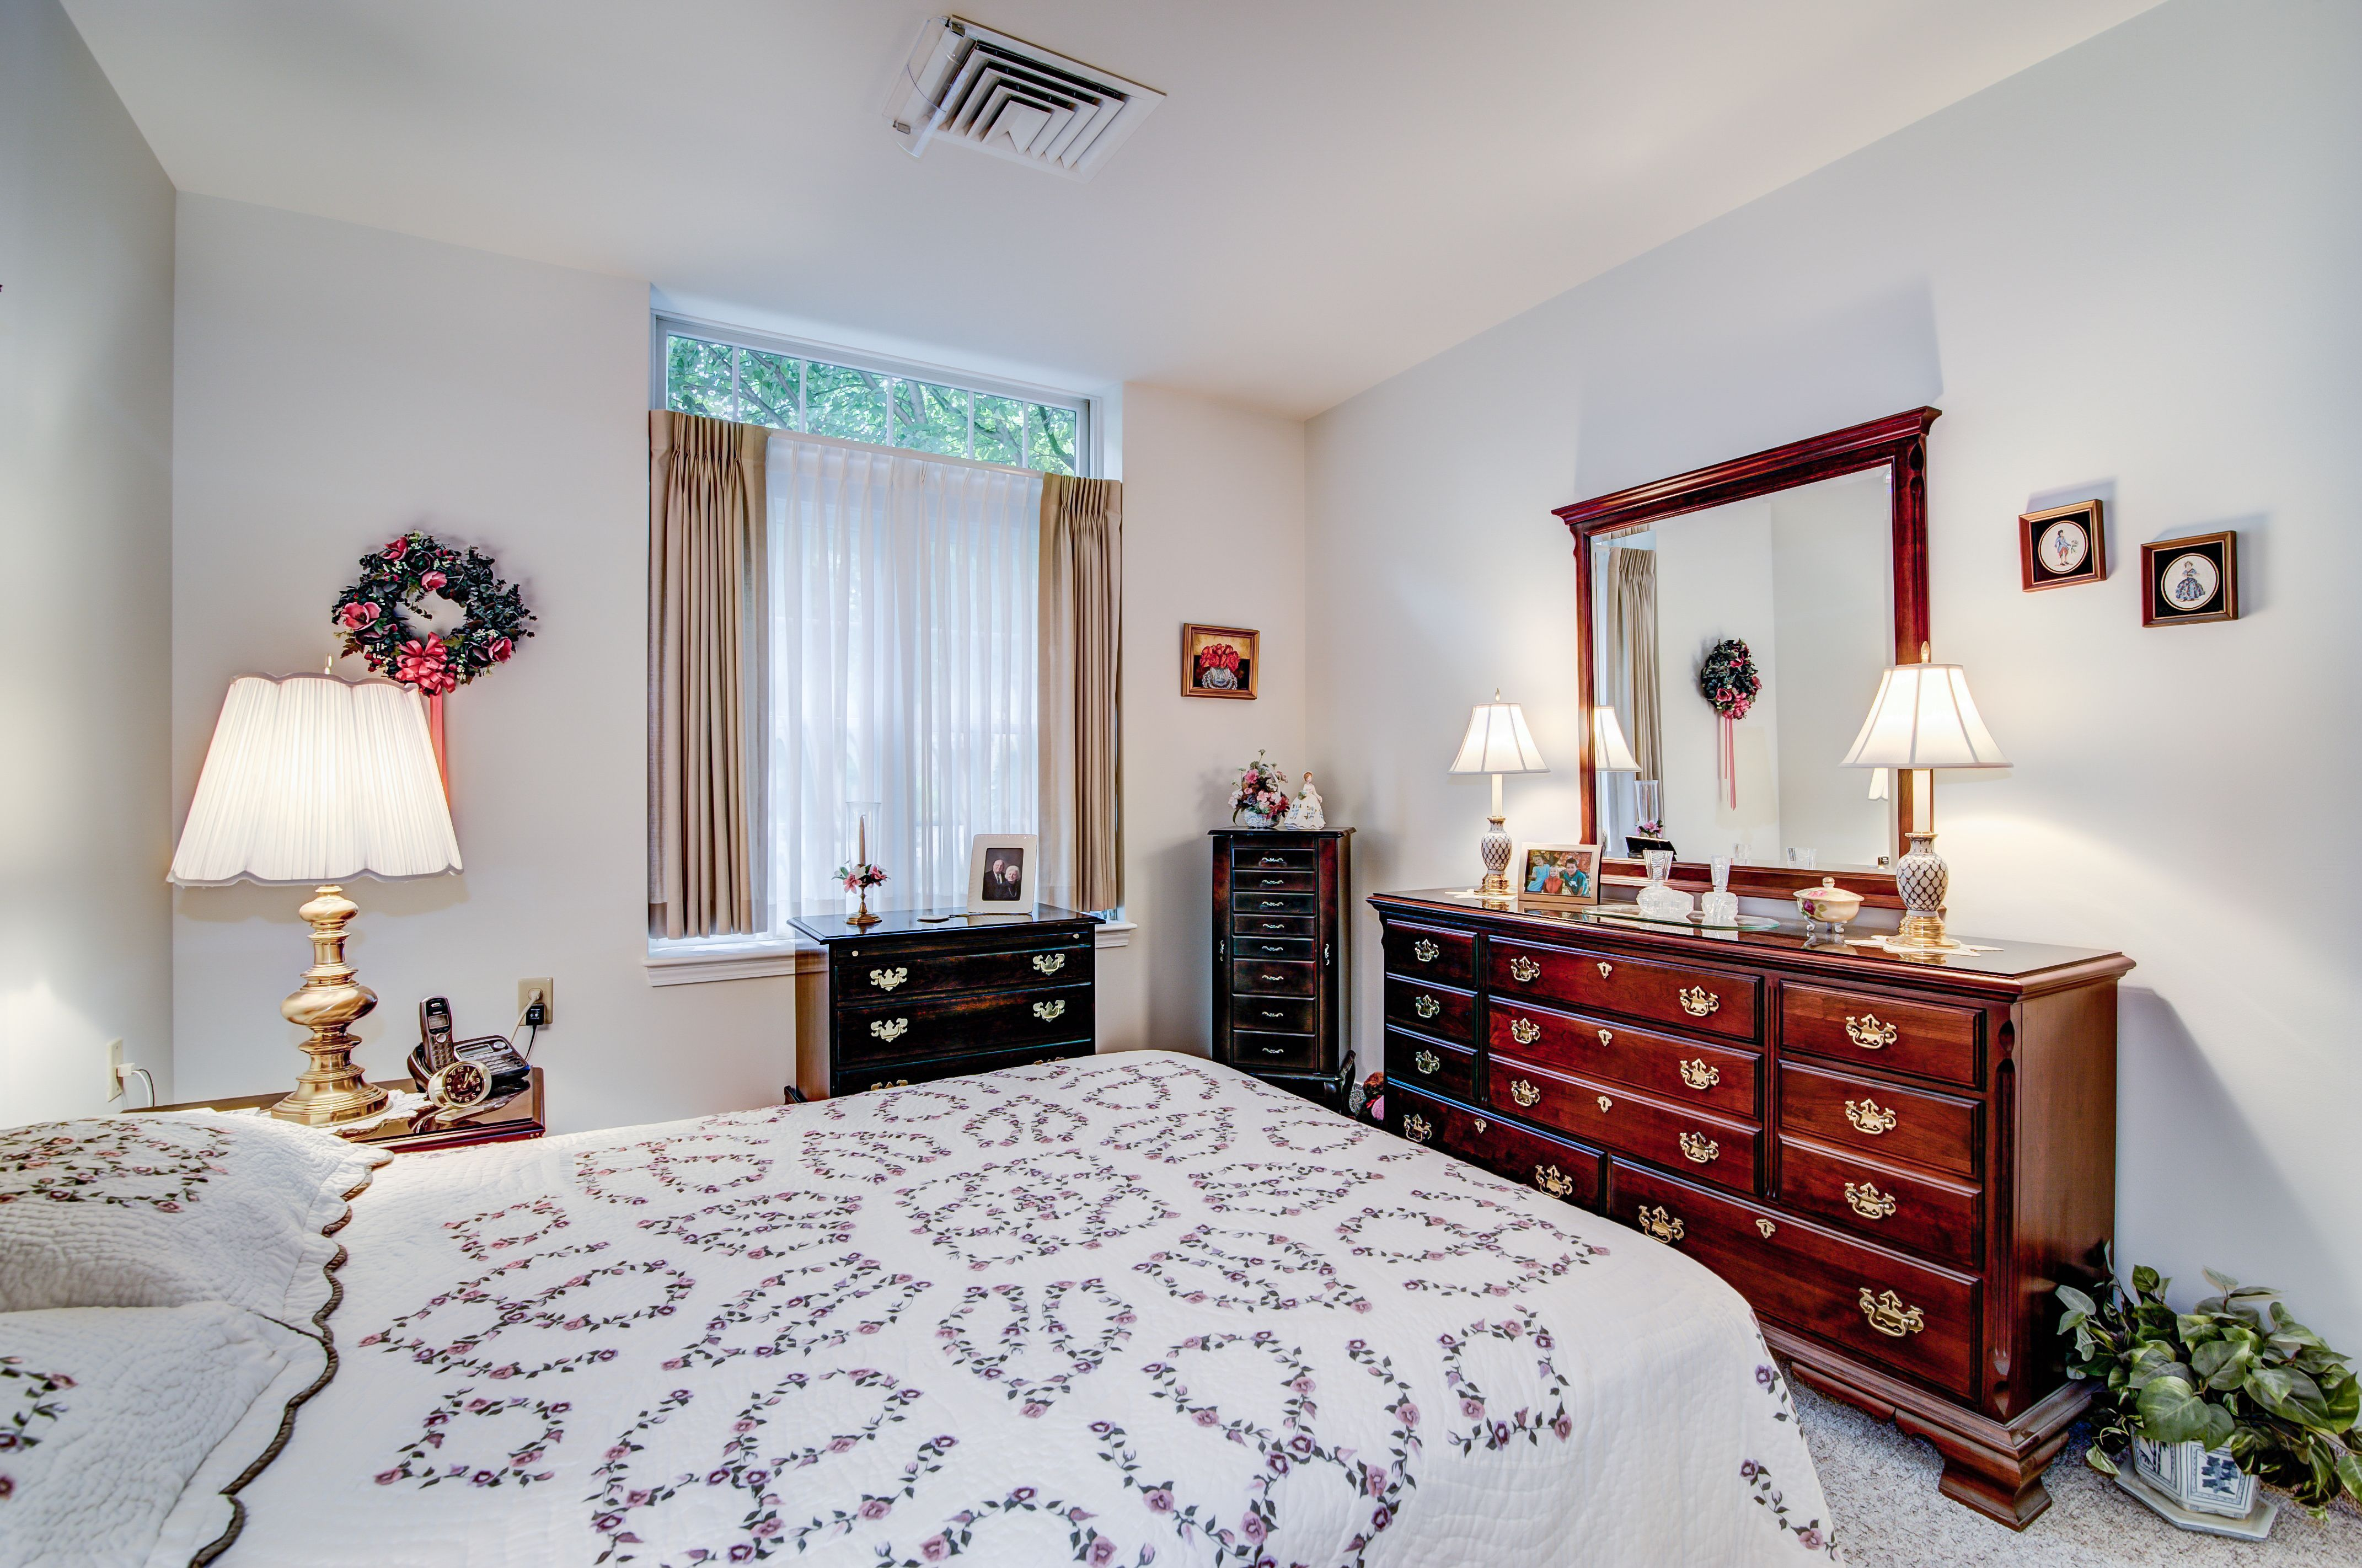 Personal Care One Bedroom Apartment livingbranches